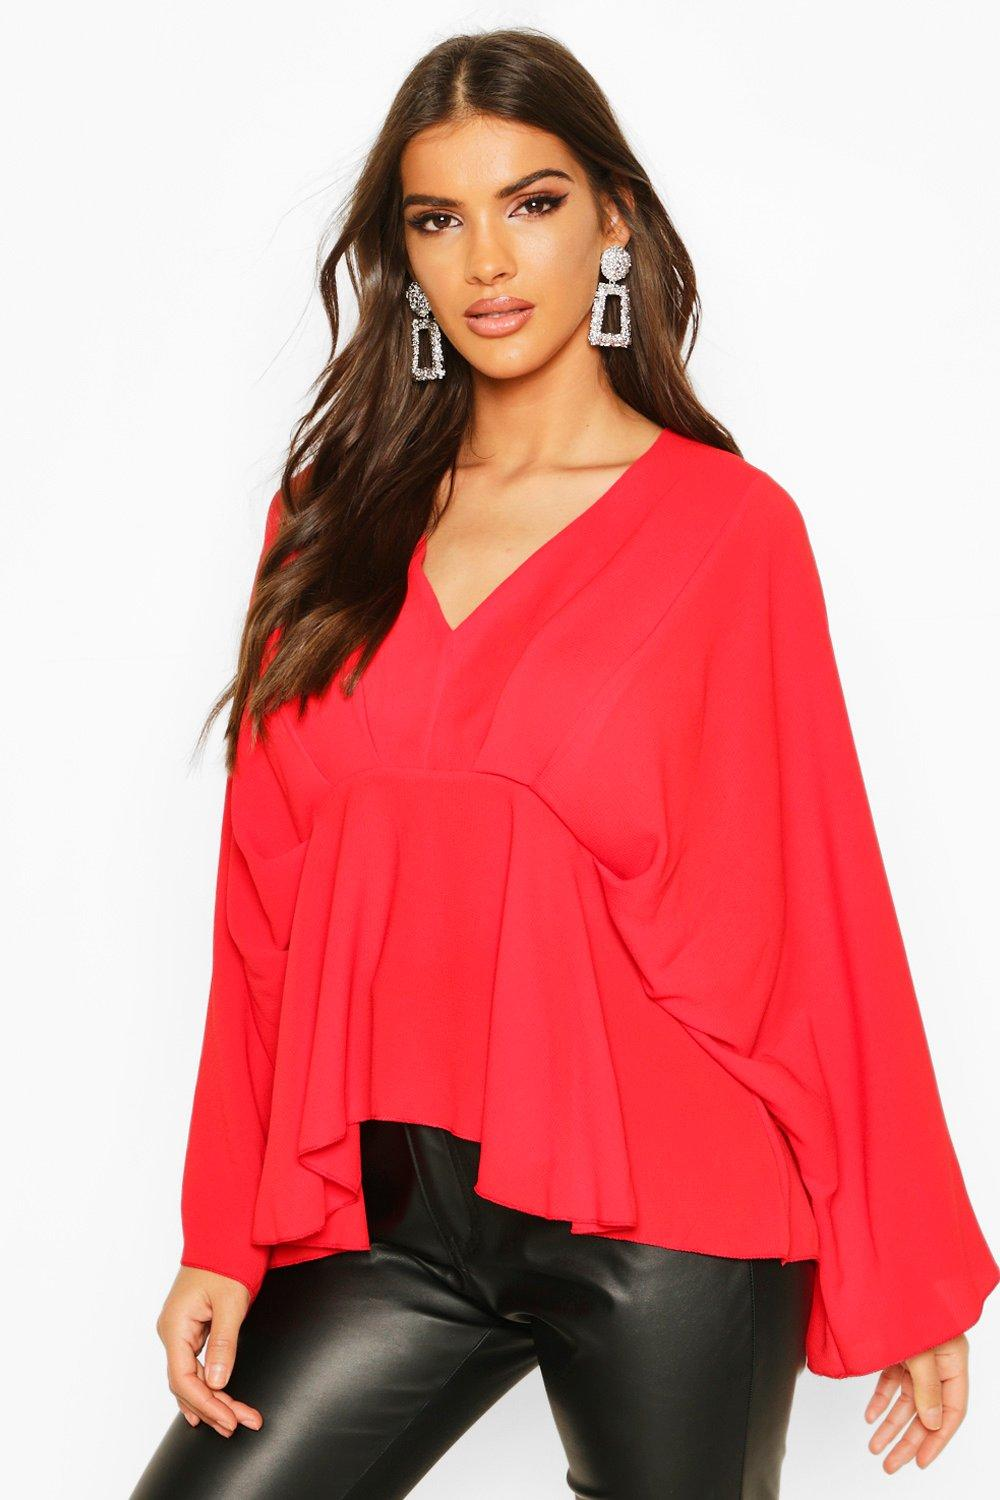 Womens Pleat Front Peplum Top - red - 36, Red - Boohoo.com